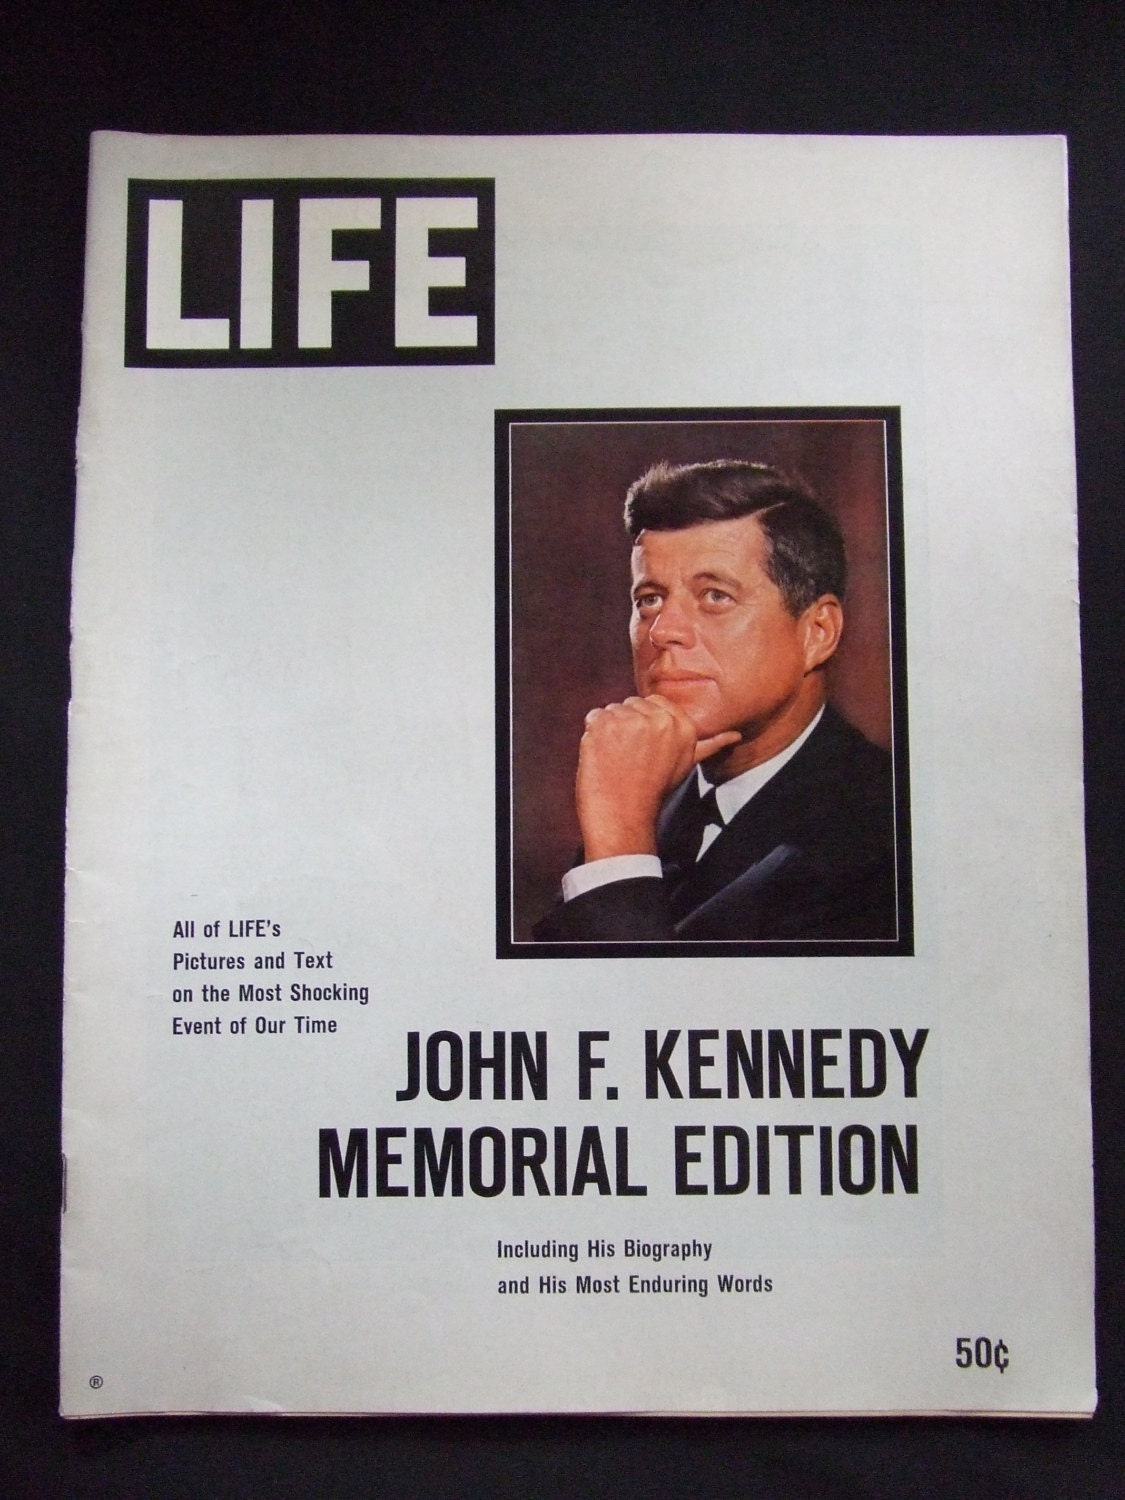 biography of john f kennedy John fitzgerald jack kennedy (d 1963) was the 35th president of the united states kennedy was noted for his cold war leadership, avoiding nuclear confrontation with the soviet union while advancing the cause of civil rights at home and setting a goal of a manned moon landing by the end of.